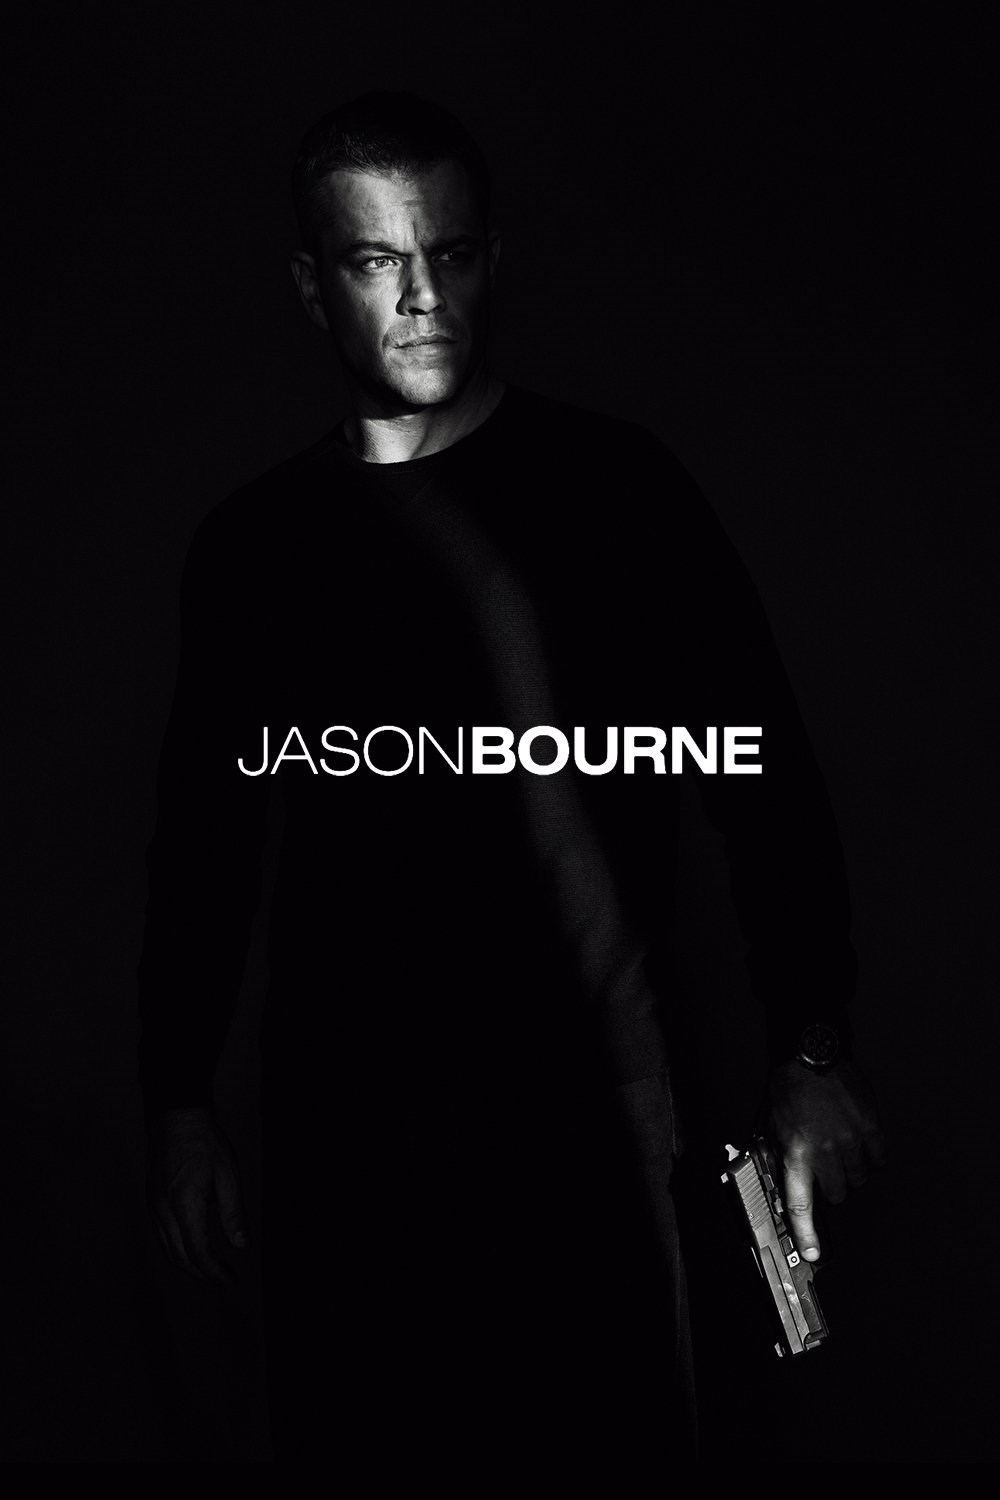 jason-bourne-45604